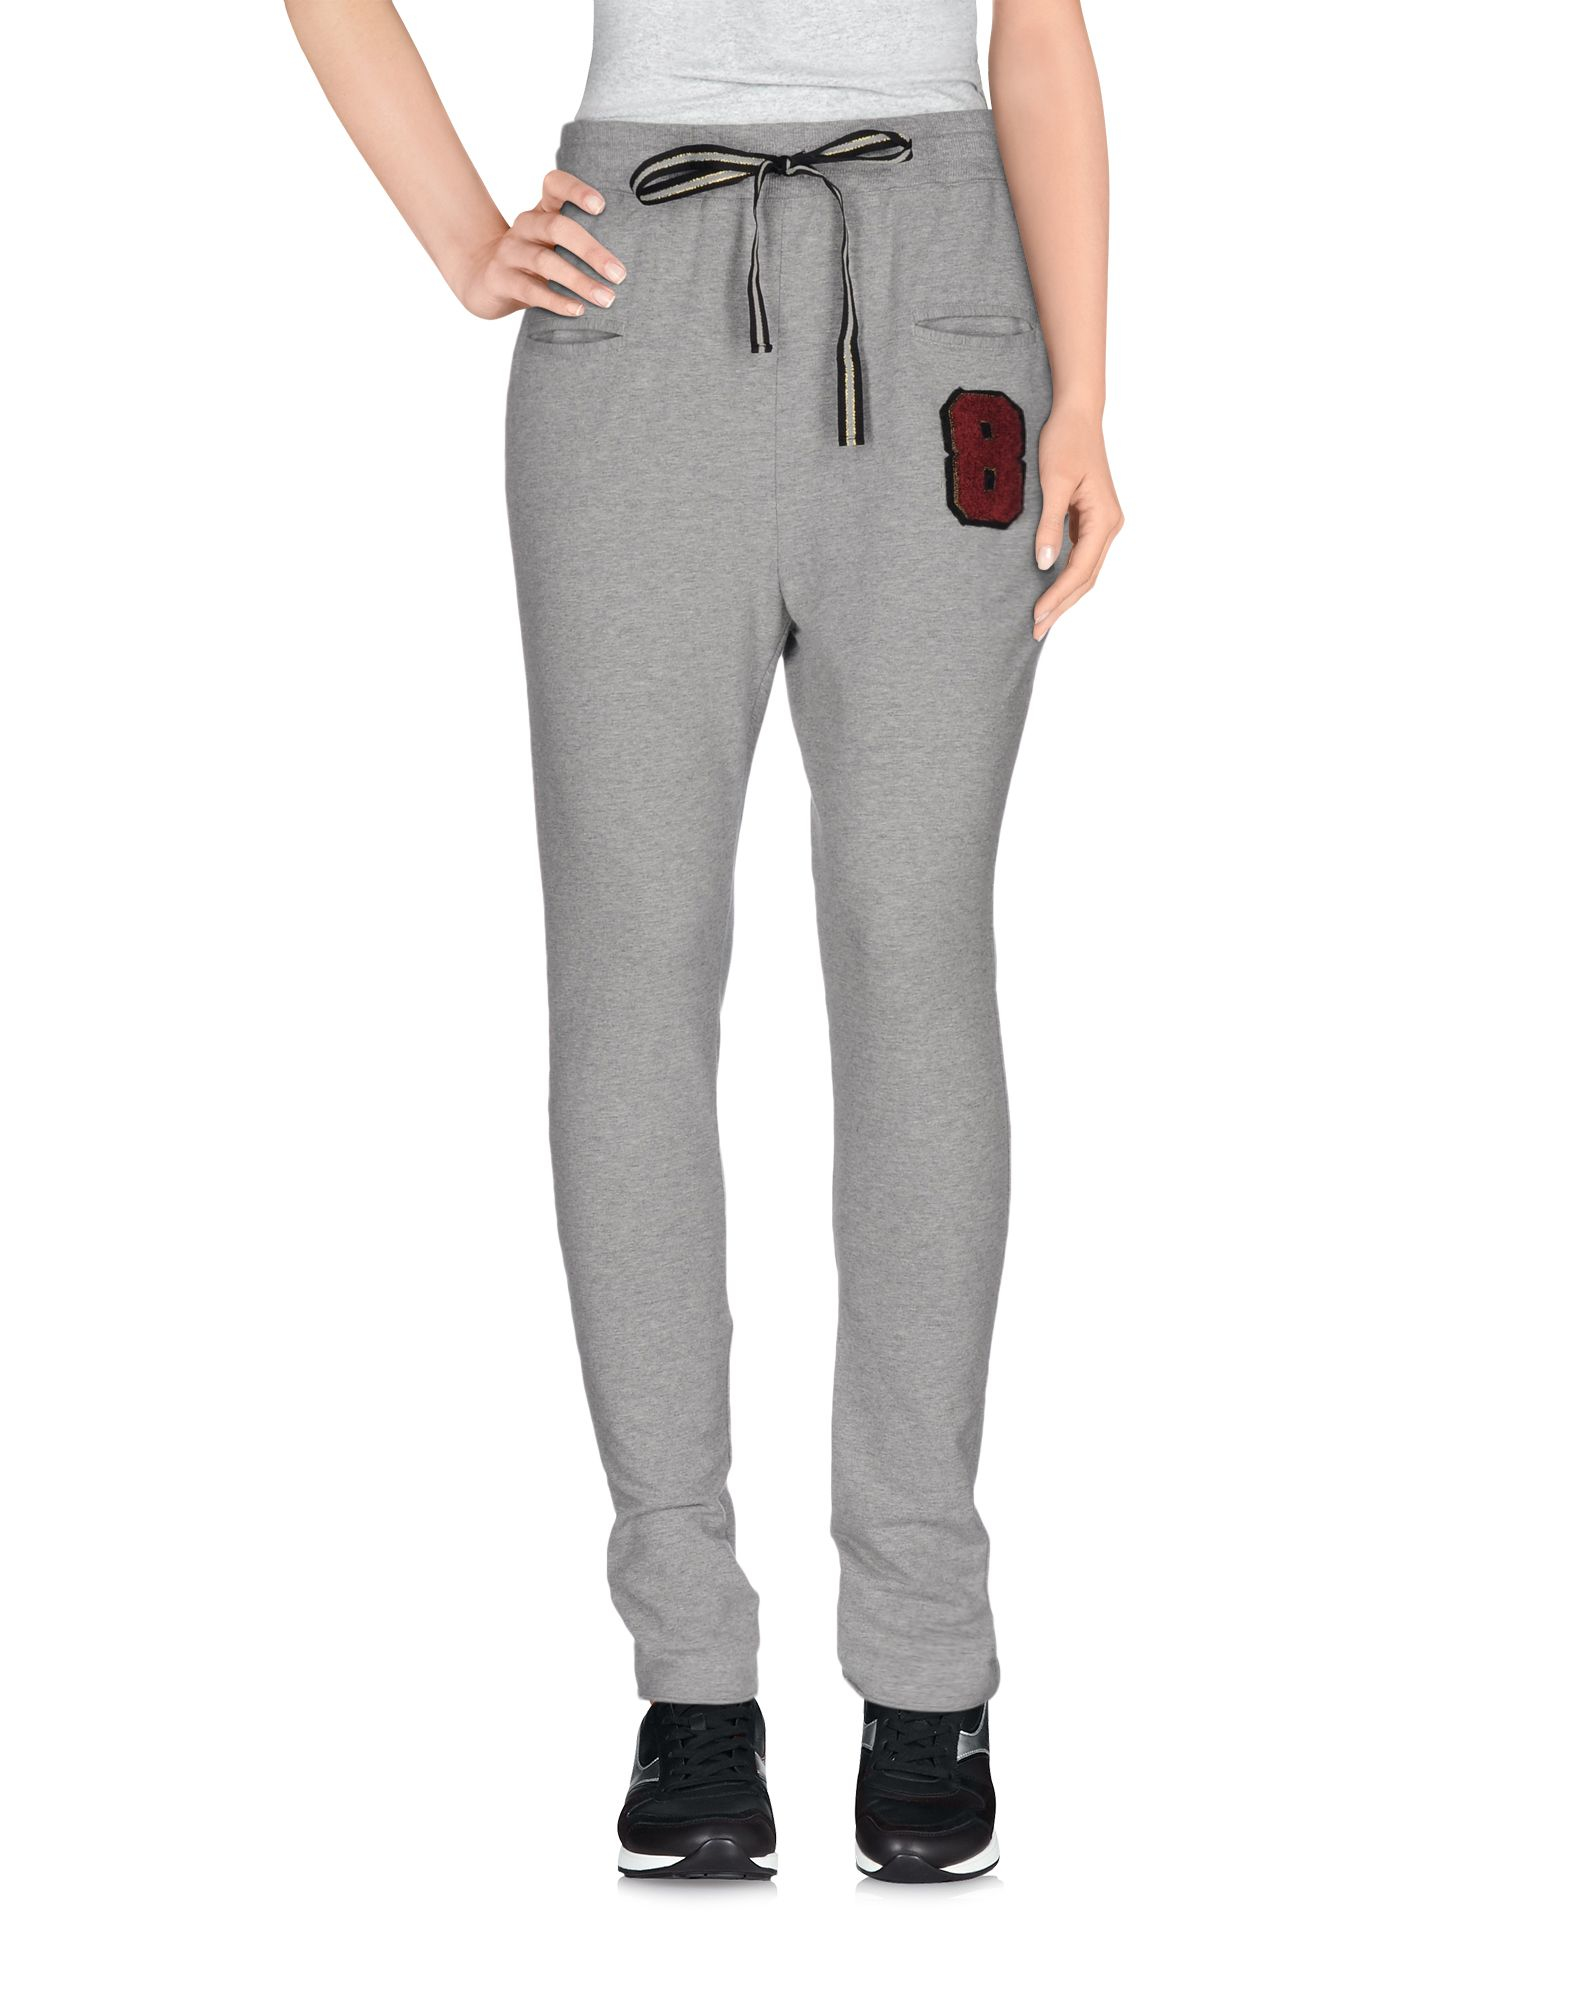 Innovative Richmond X Casual Trouser In Gray Light Grey  Save 75  Lyst